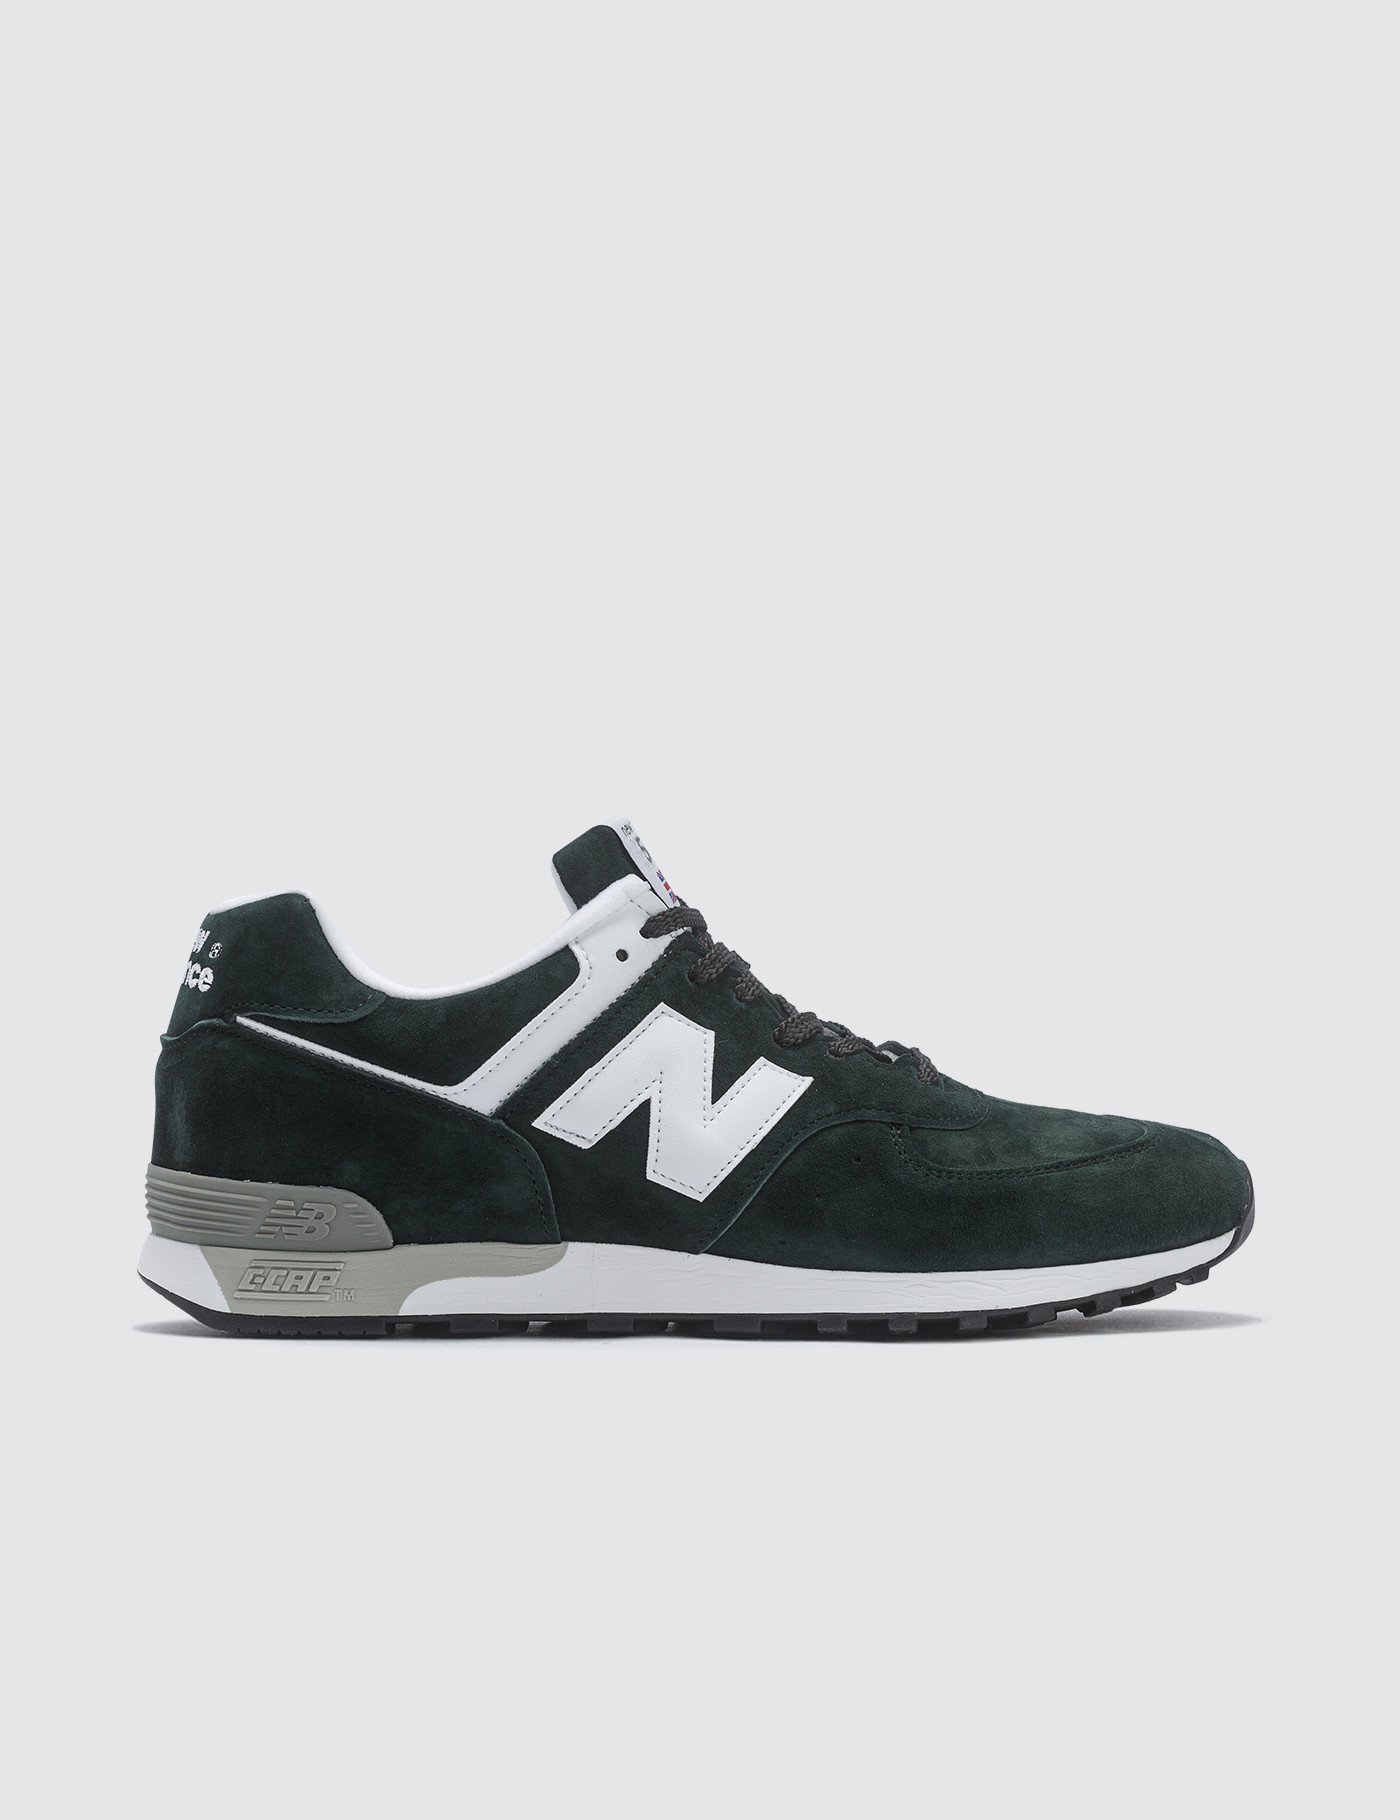 brand new 4b5a7 8130e Made In UK 576, New Balance